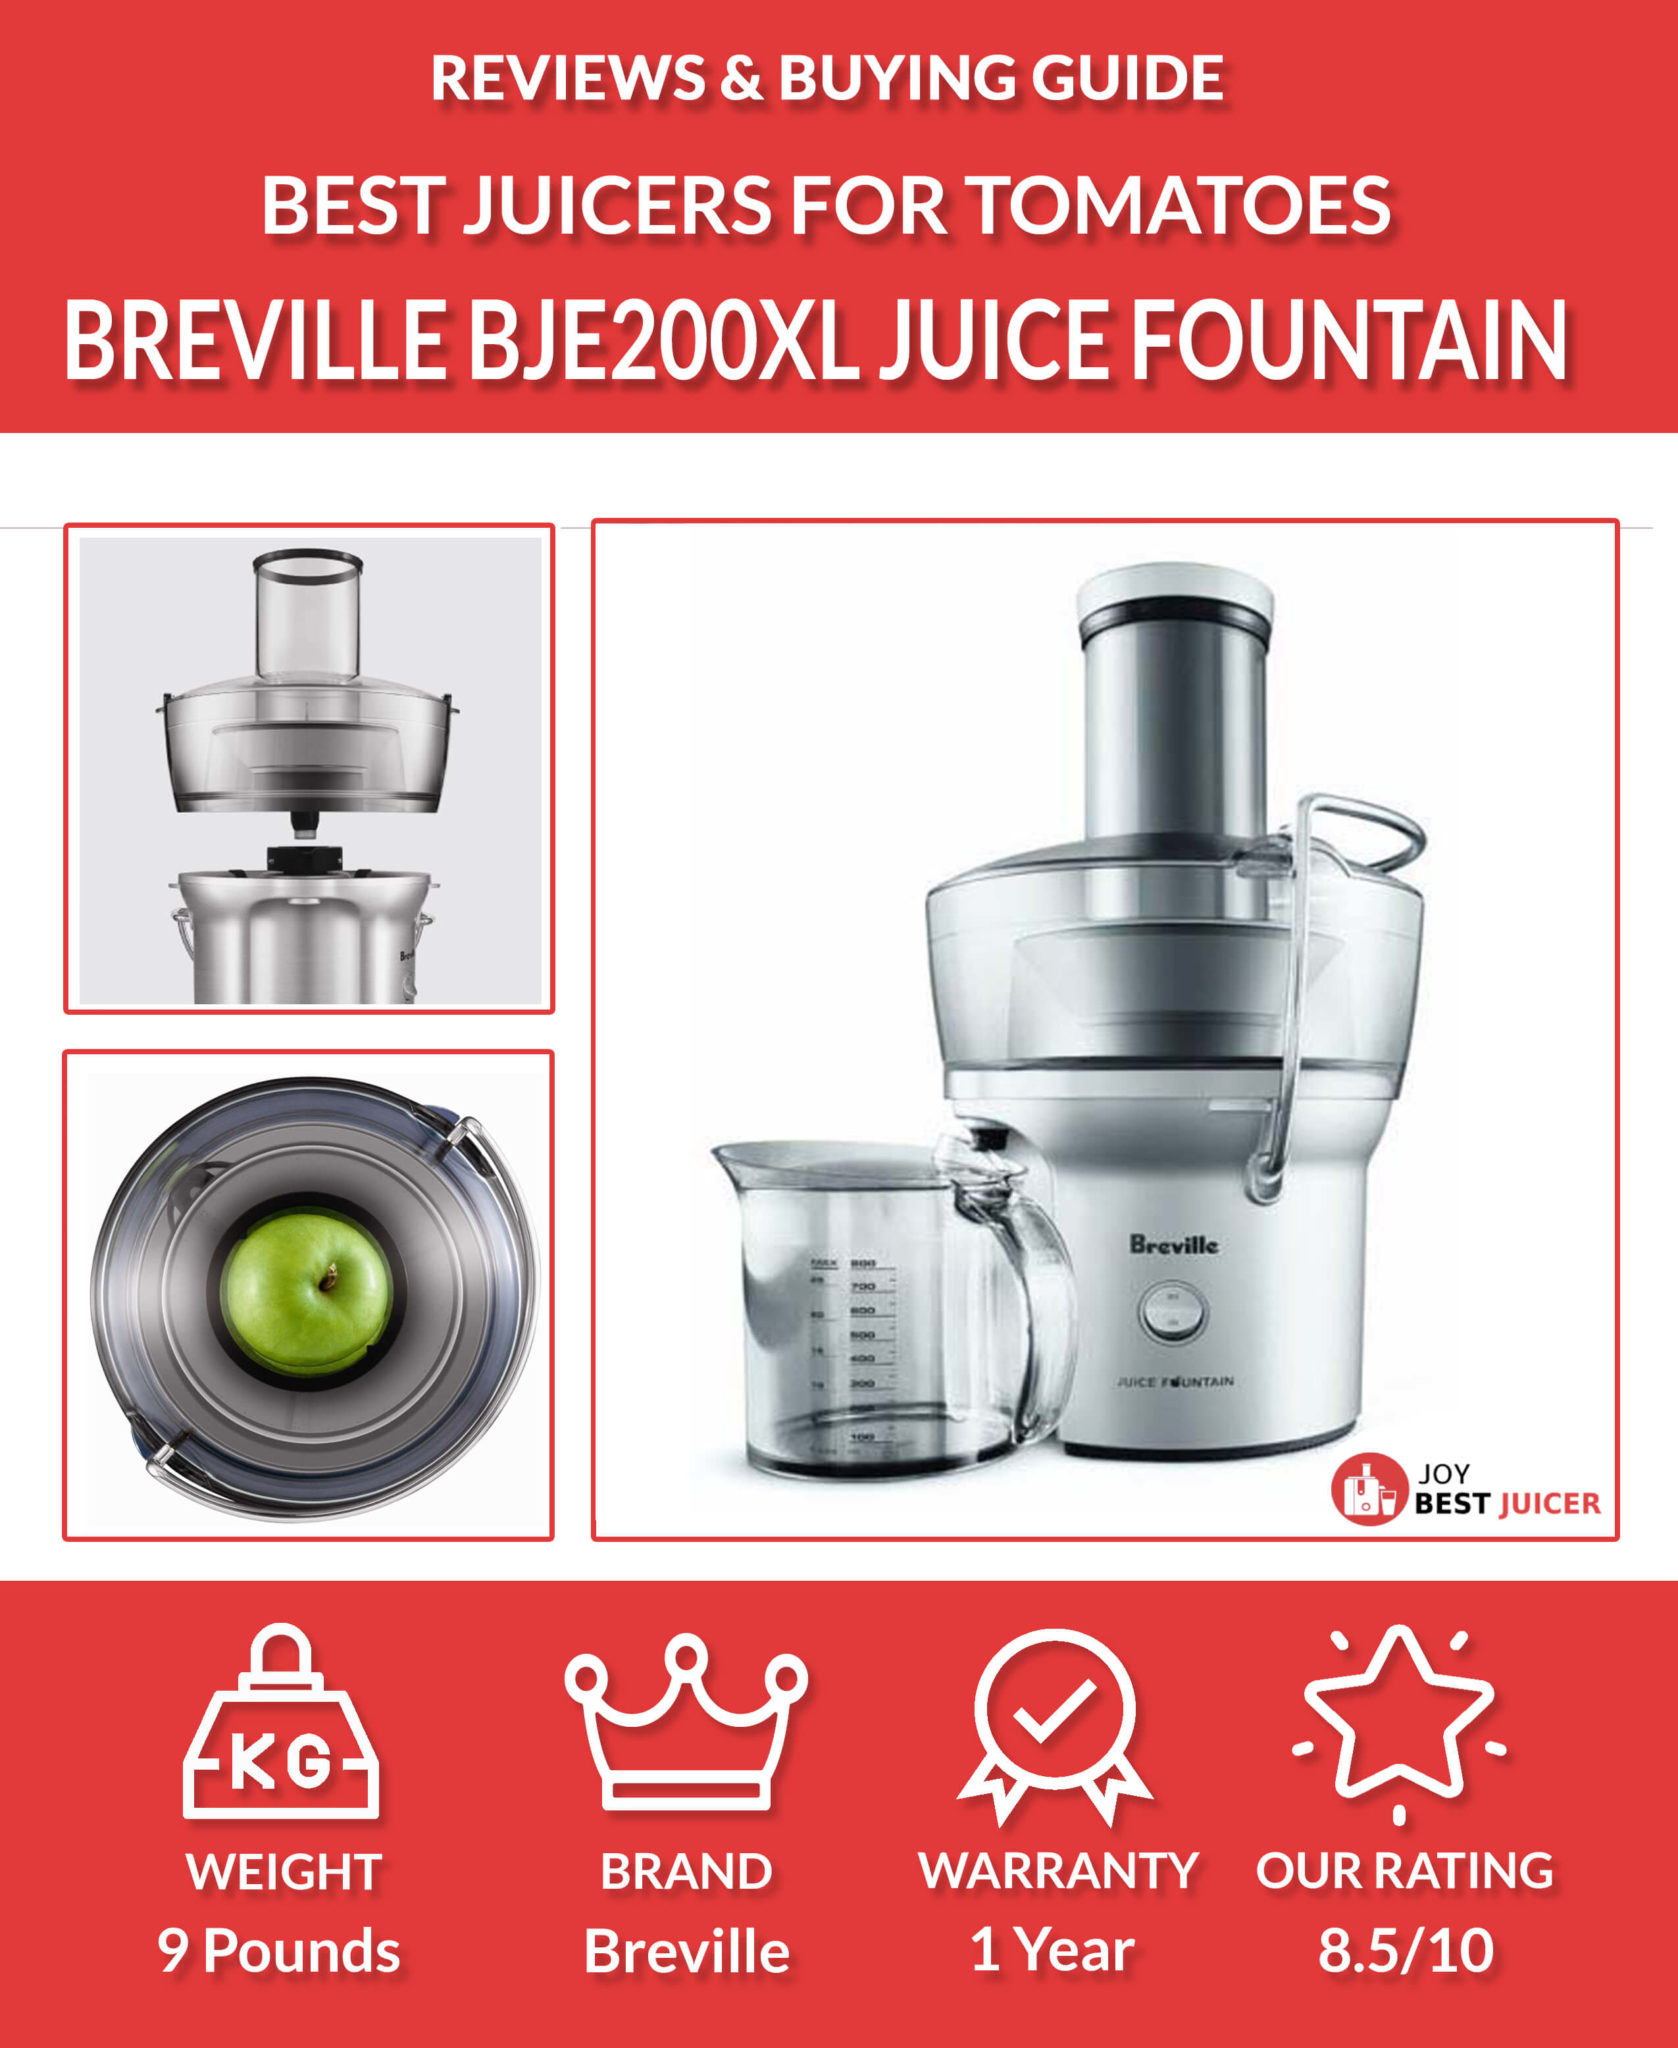 breville bje200xl compact juice fountain review - Best Electric Tomato Juicer